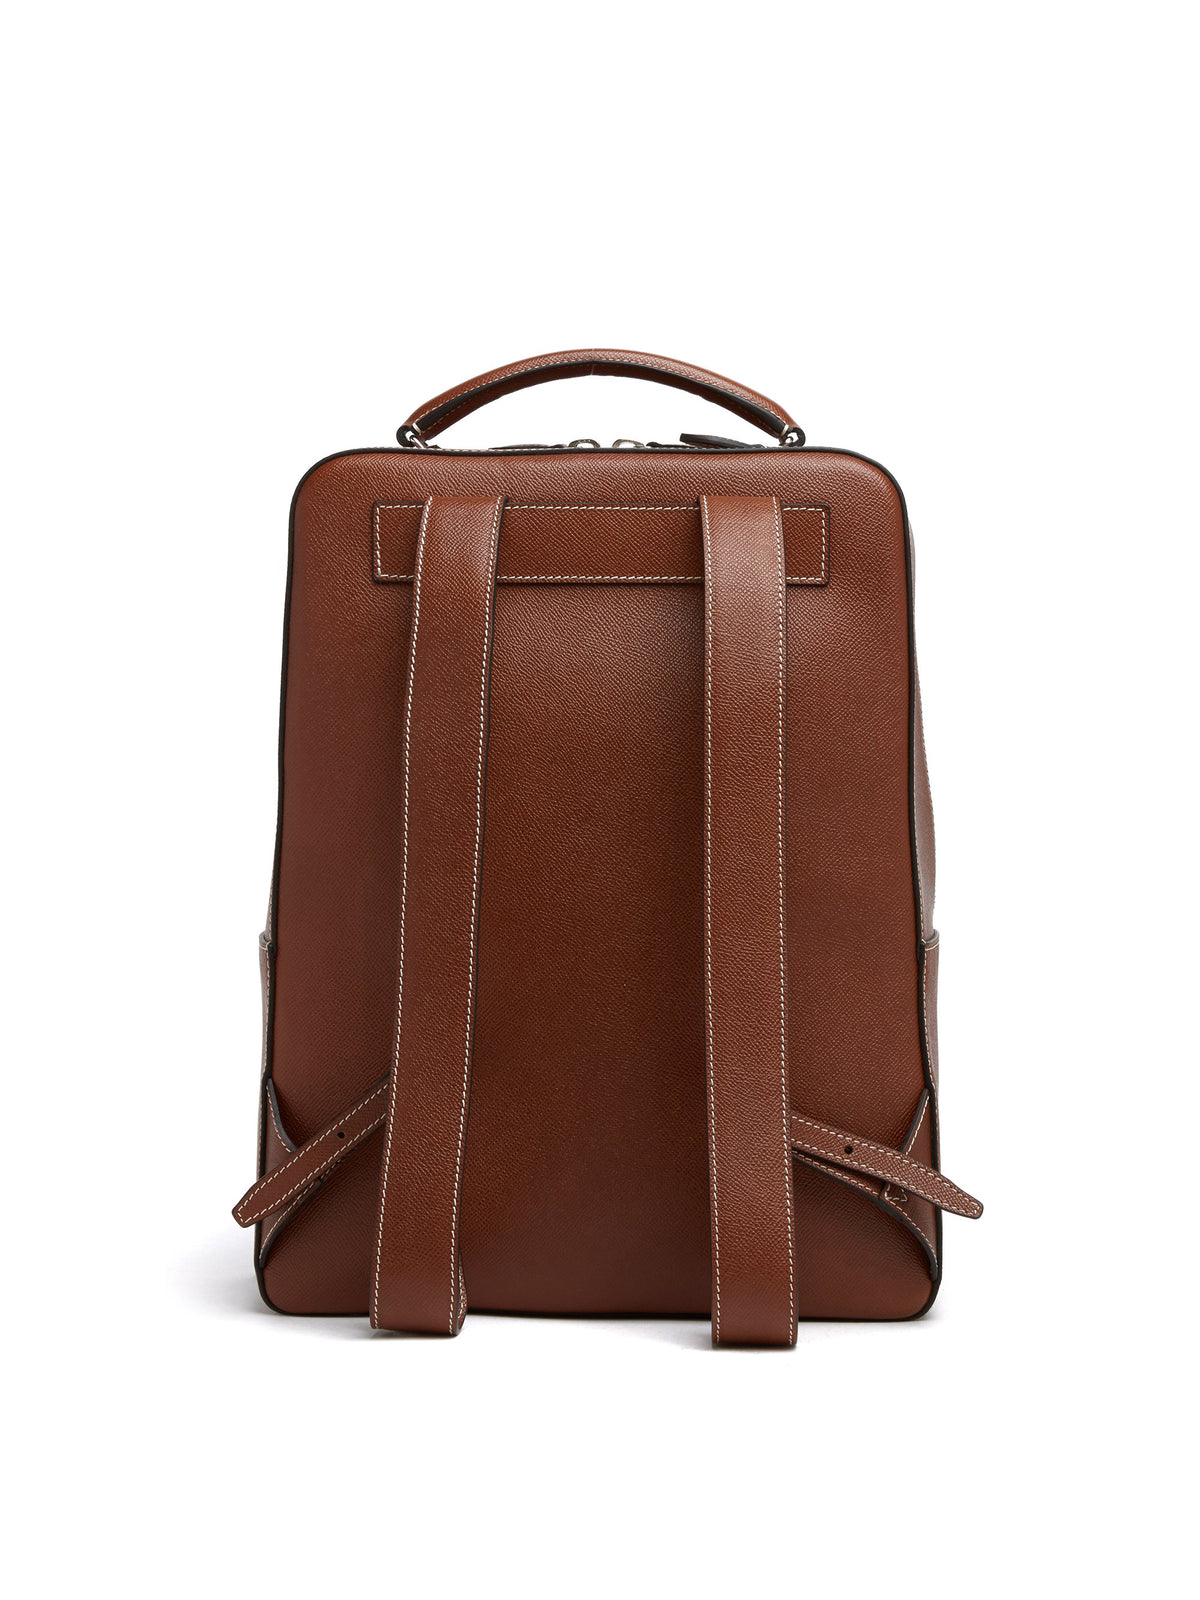 Mark Cross Alexander Leather Backpack Saffiano Acorn Back